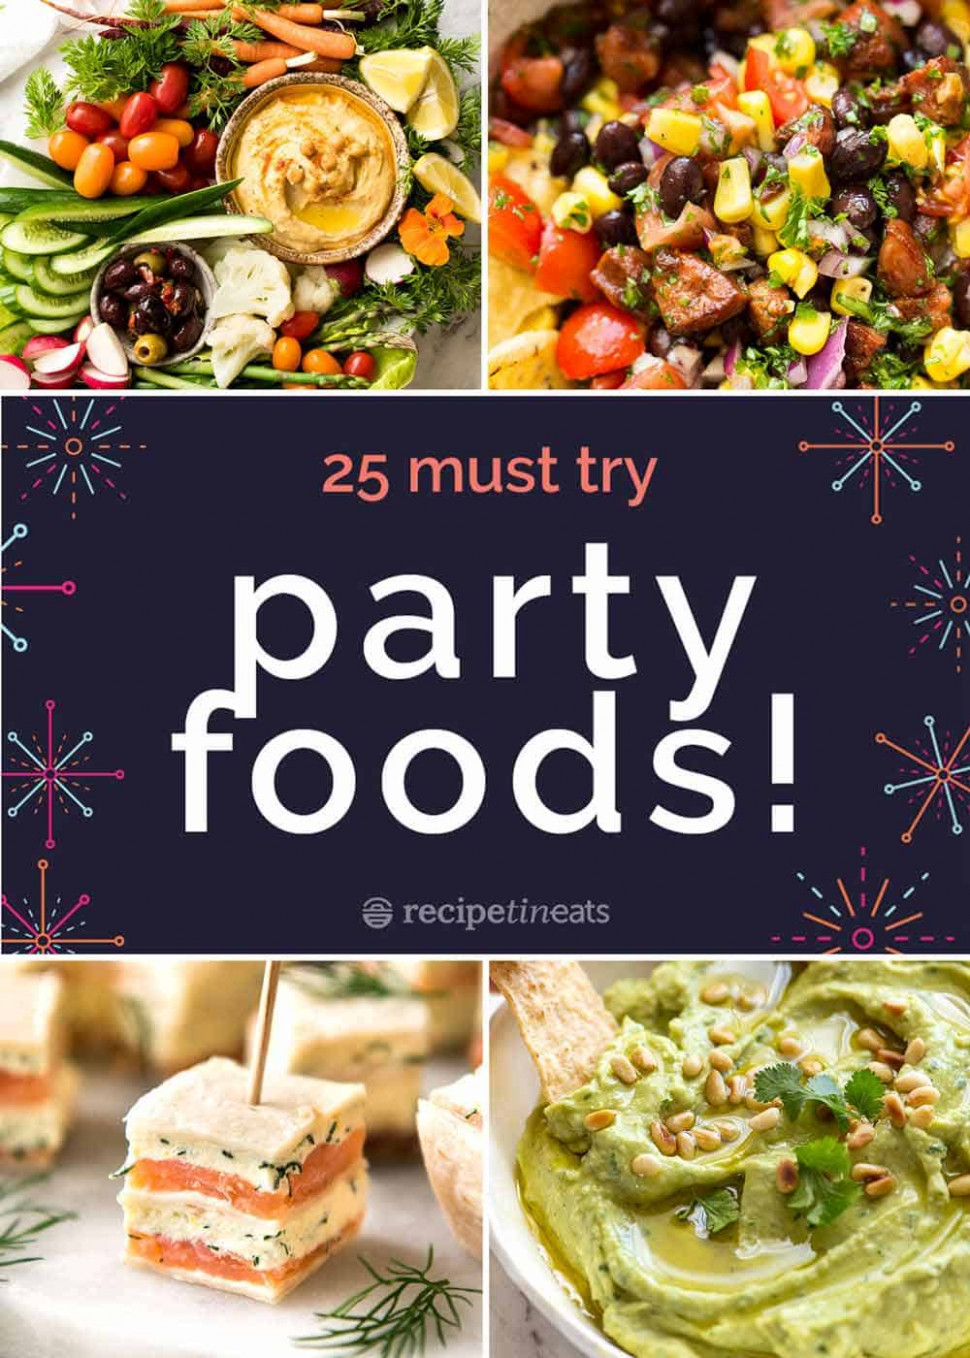 14 BEST Party Food Recipes! - recipes dinner with friends